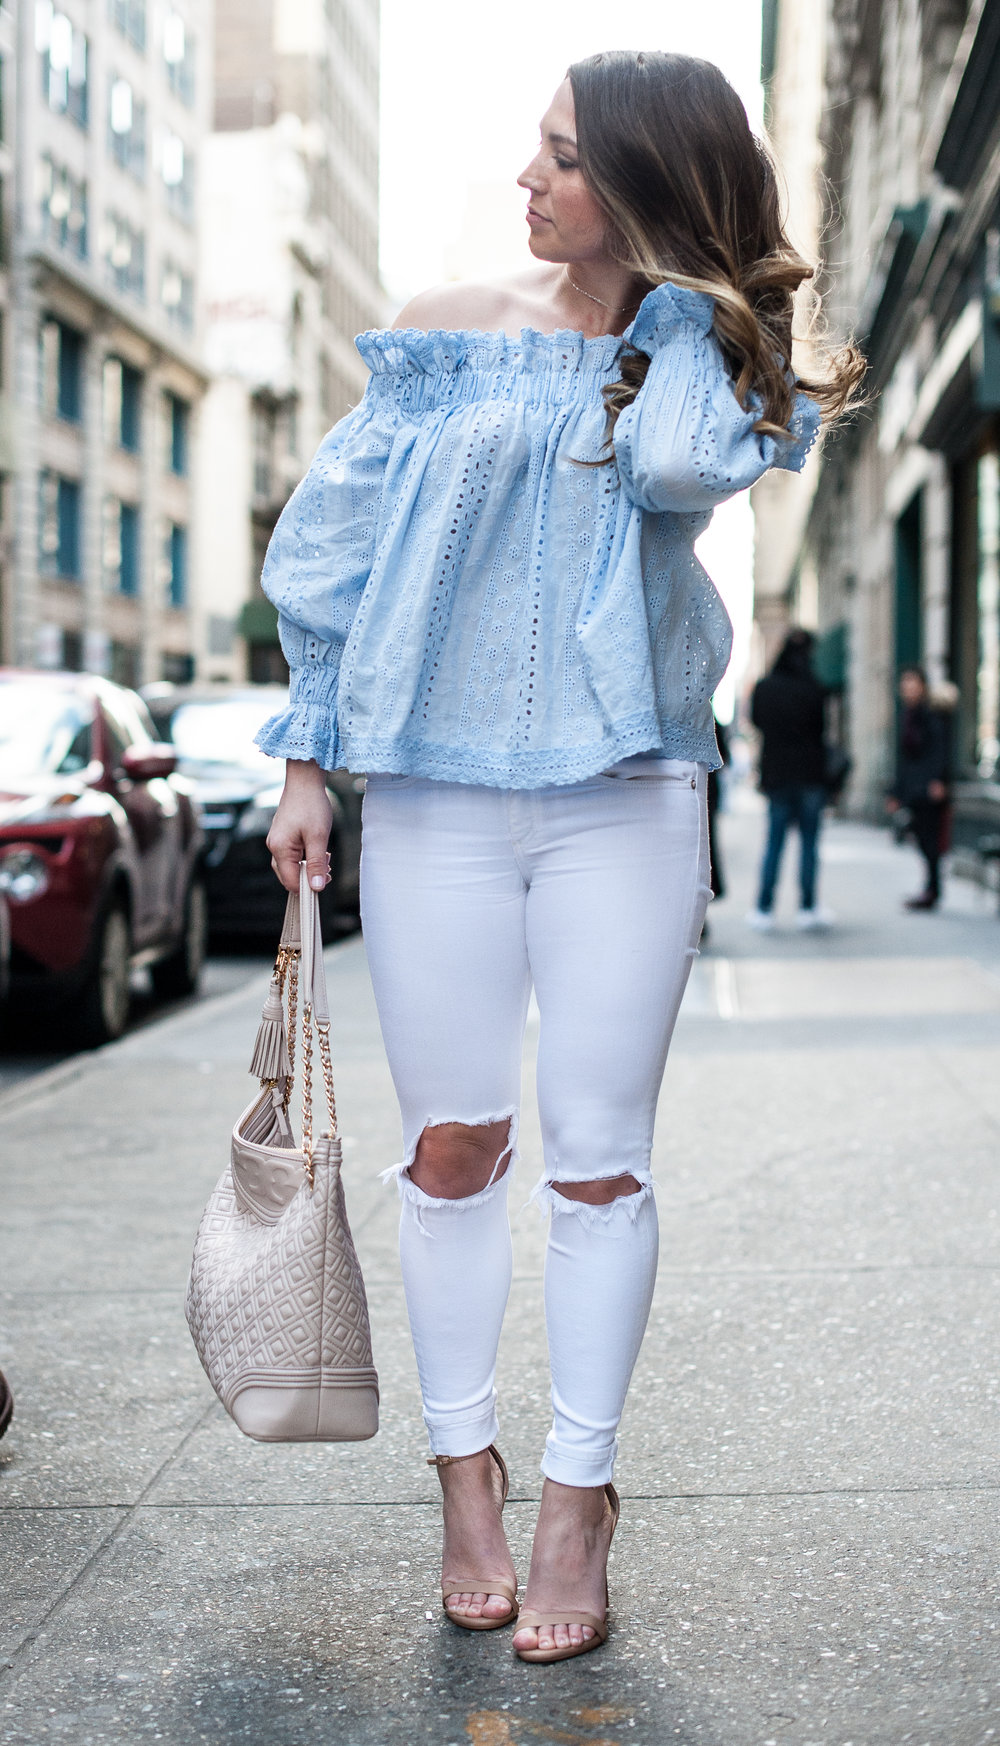 spring outfit idea, off the shoulder top + white denim